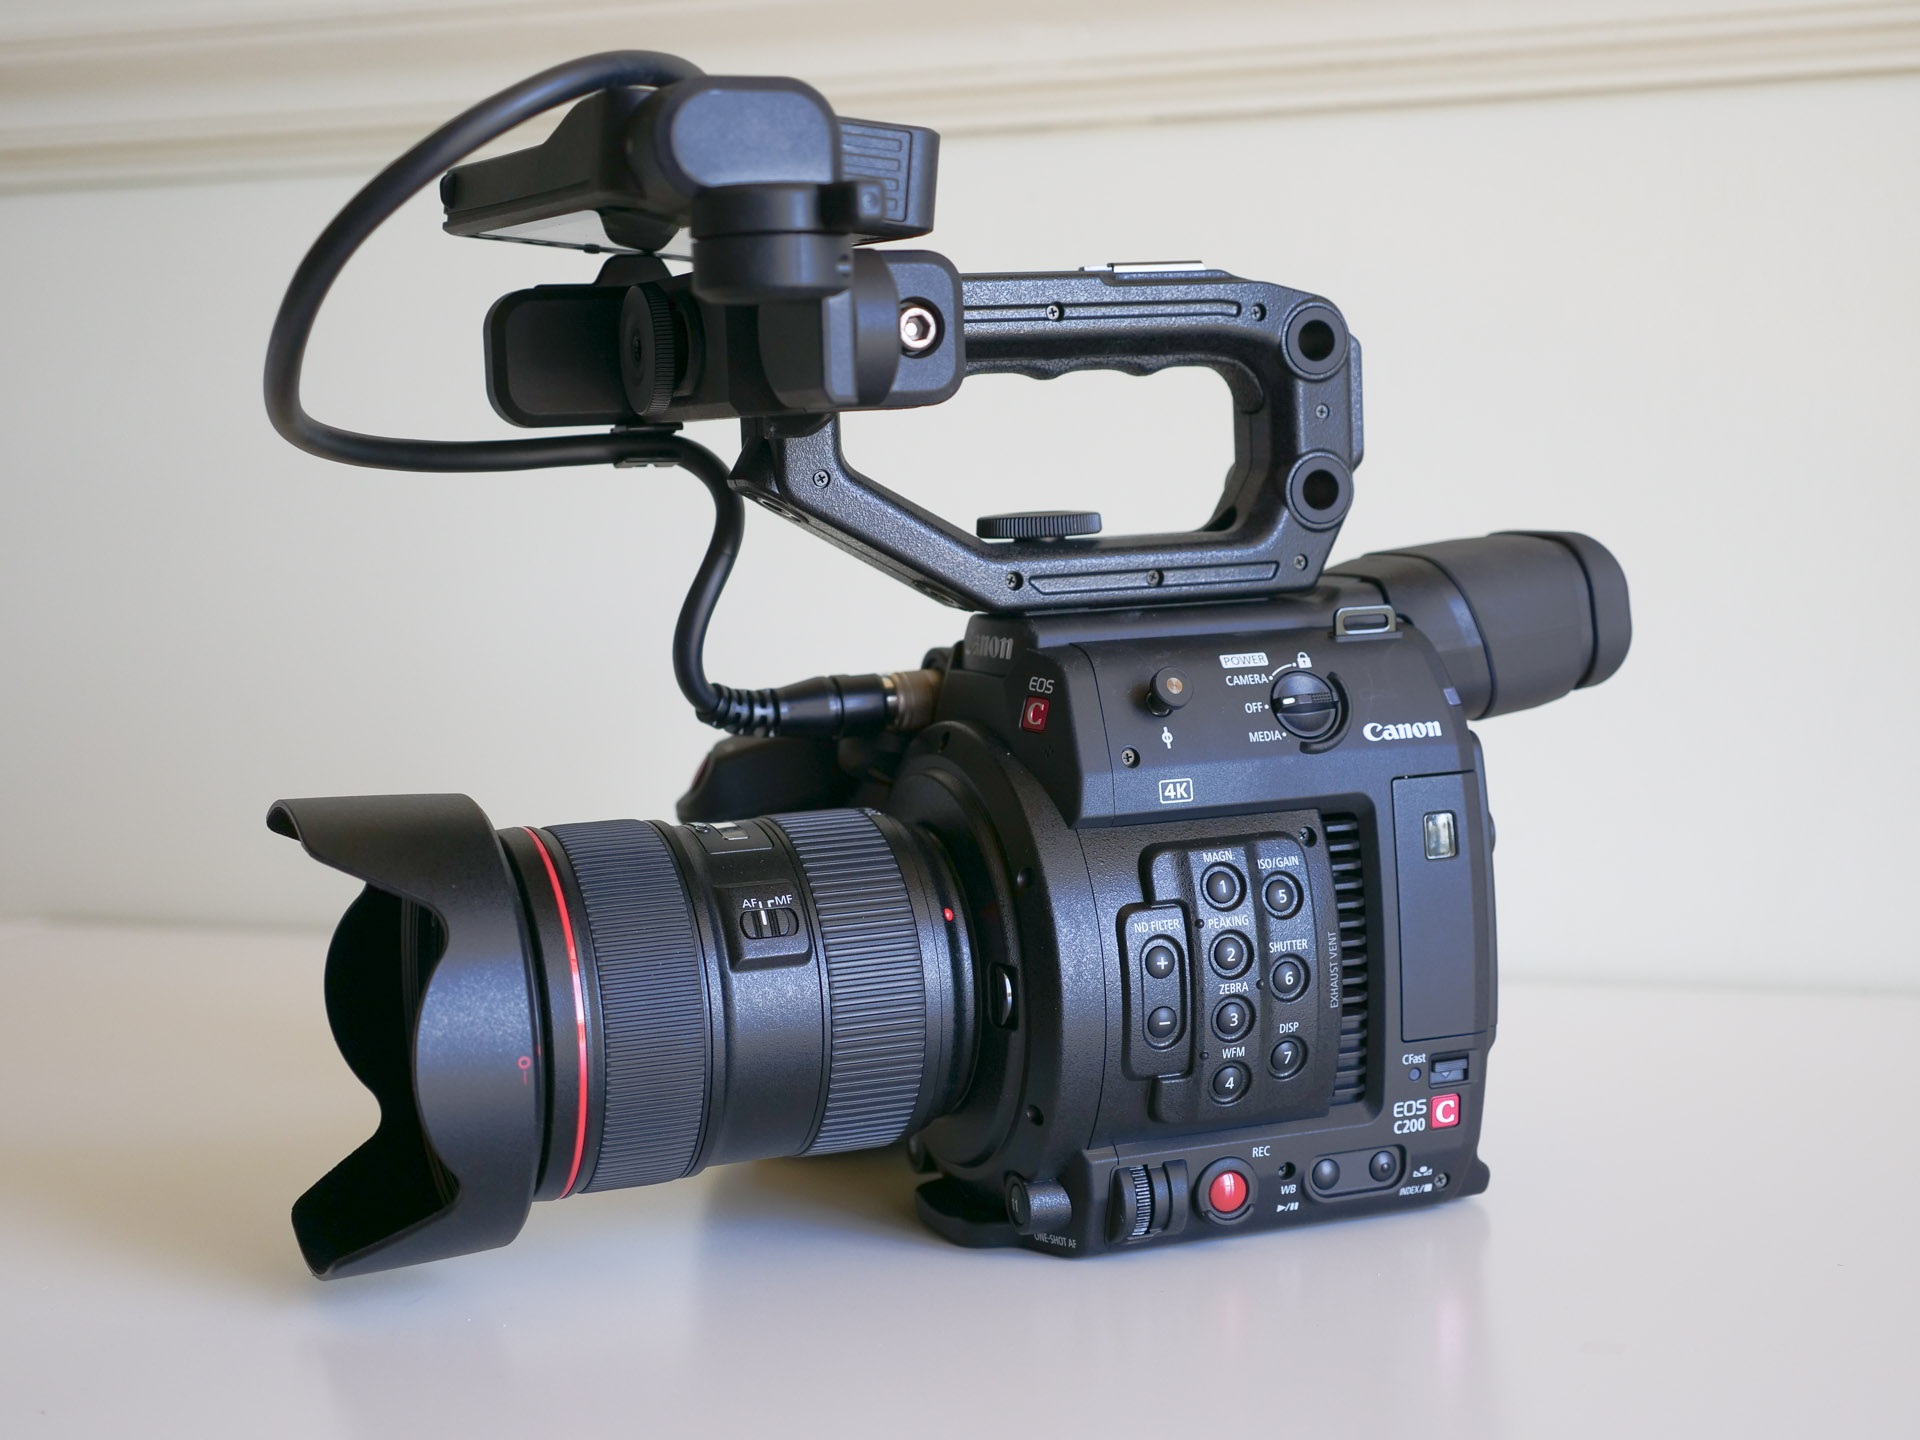 Canon C200 hands-on: 4K 60p, touchscreen AF, Canon Cinema RAW Light